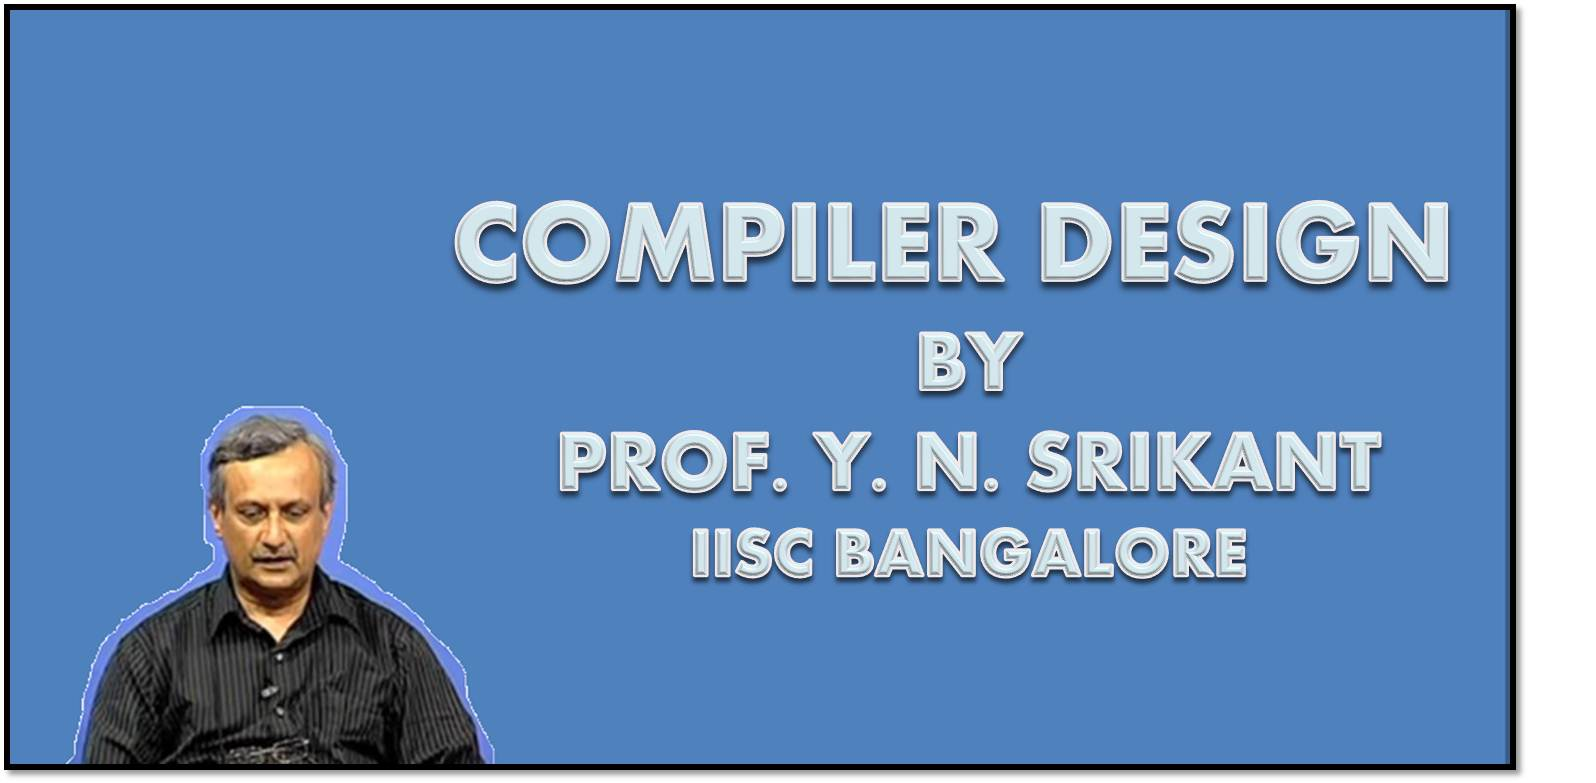 http://study.aisectonline.com/images/SubCategory/Video lecture series on Compiler Design by Prof. Y.N.Srikant, IISC Bangalore.jpg